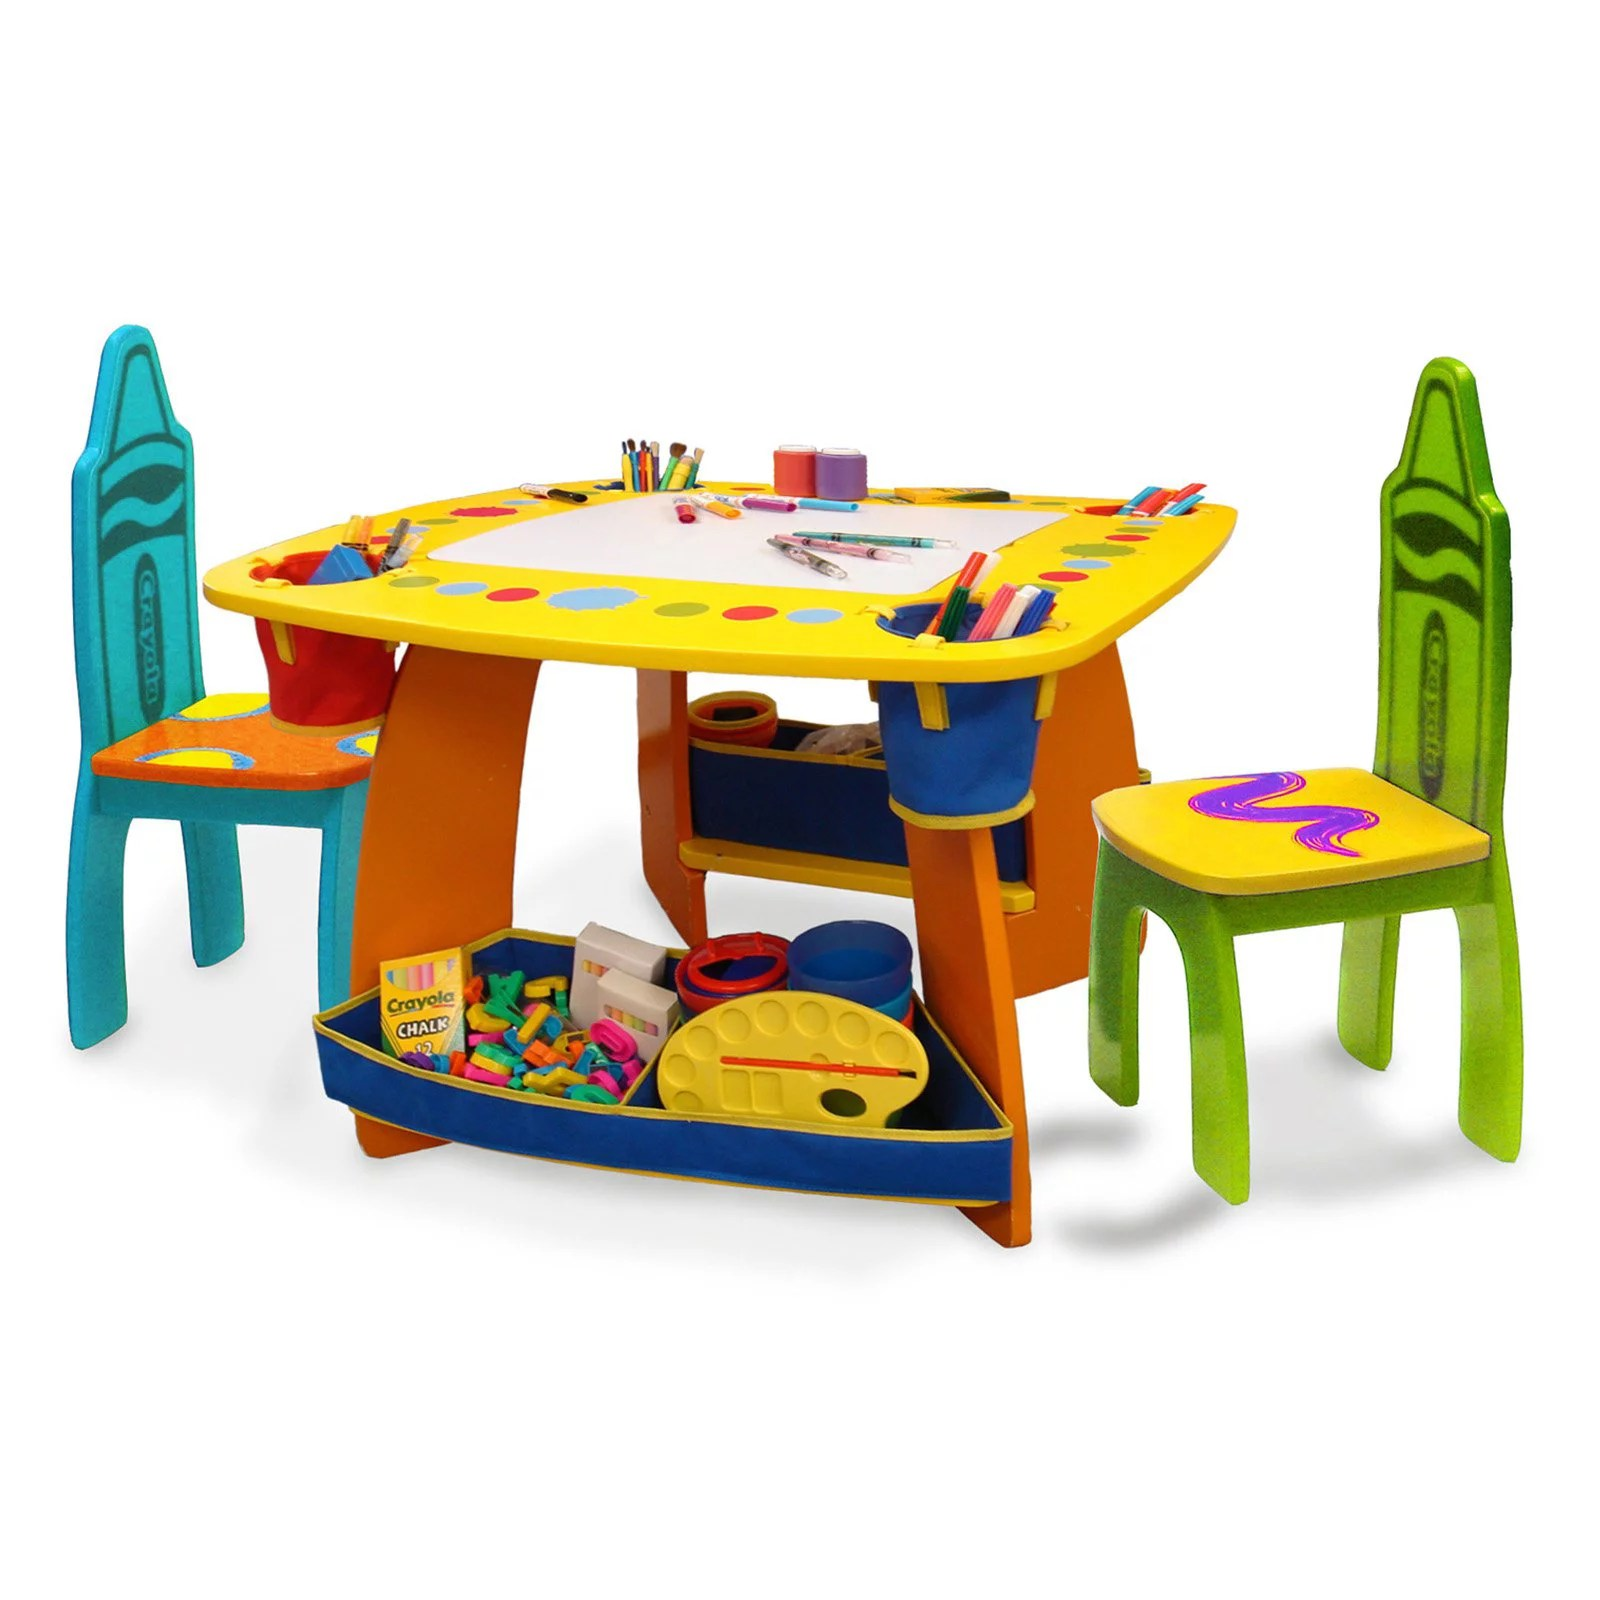 Toddler Wooden Chair Grow N Up Crayola Kids Wooden Table Chair Set